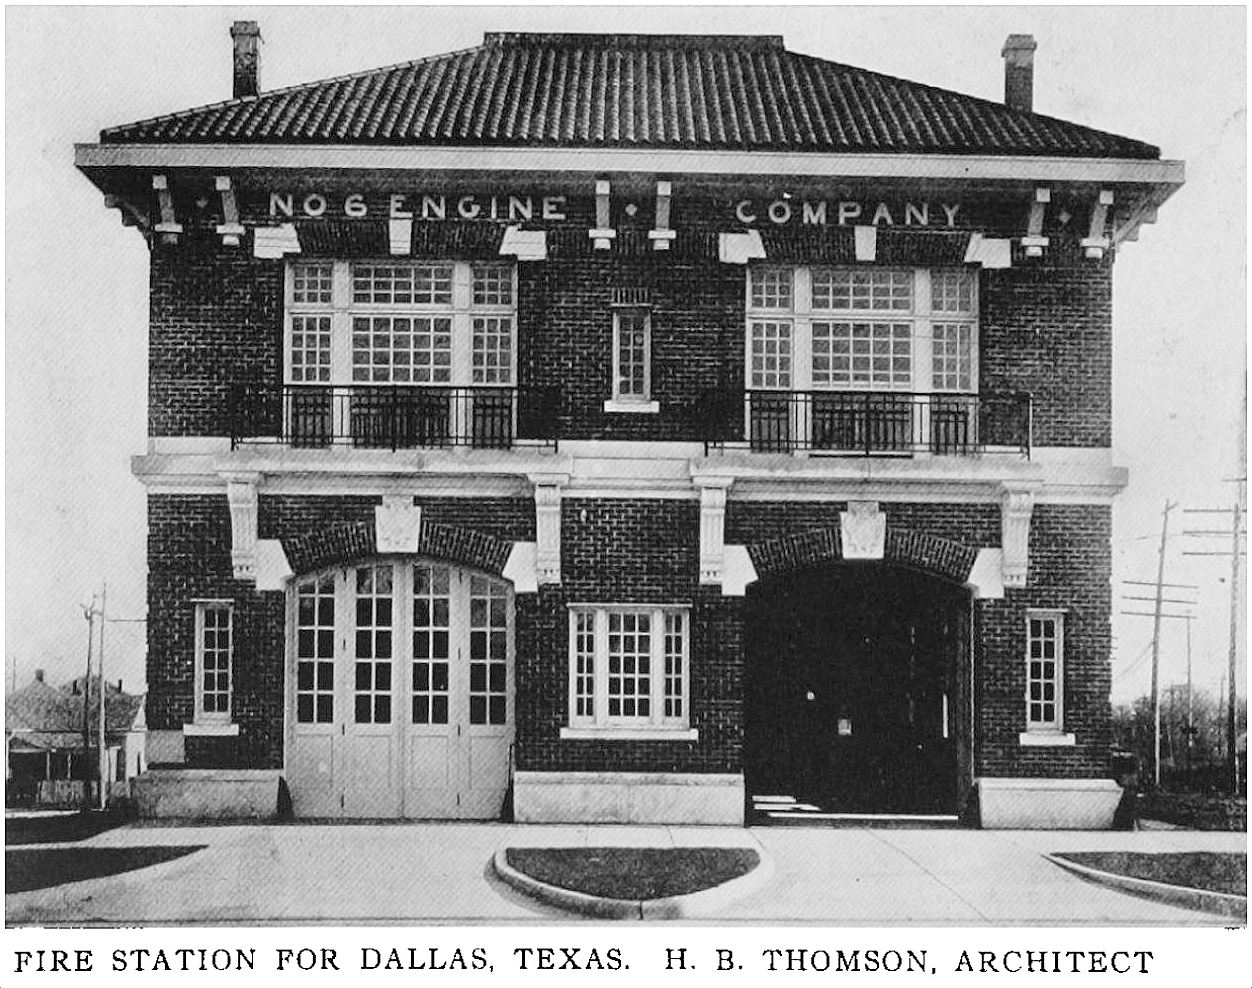 firehouse_no-6-engine_western-architect_july-1914